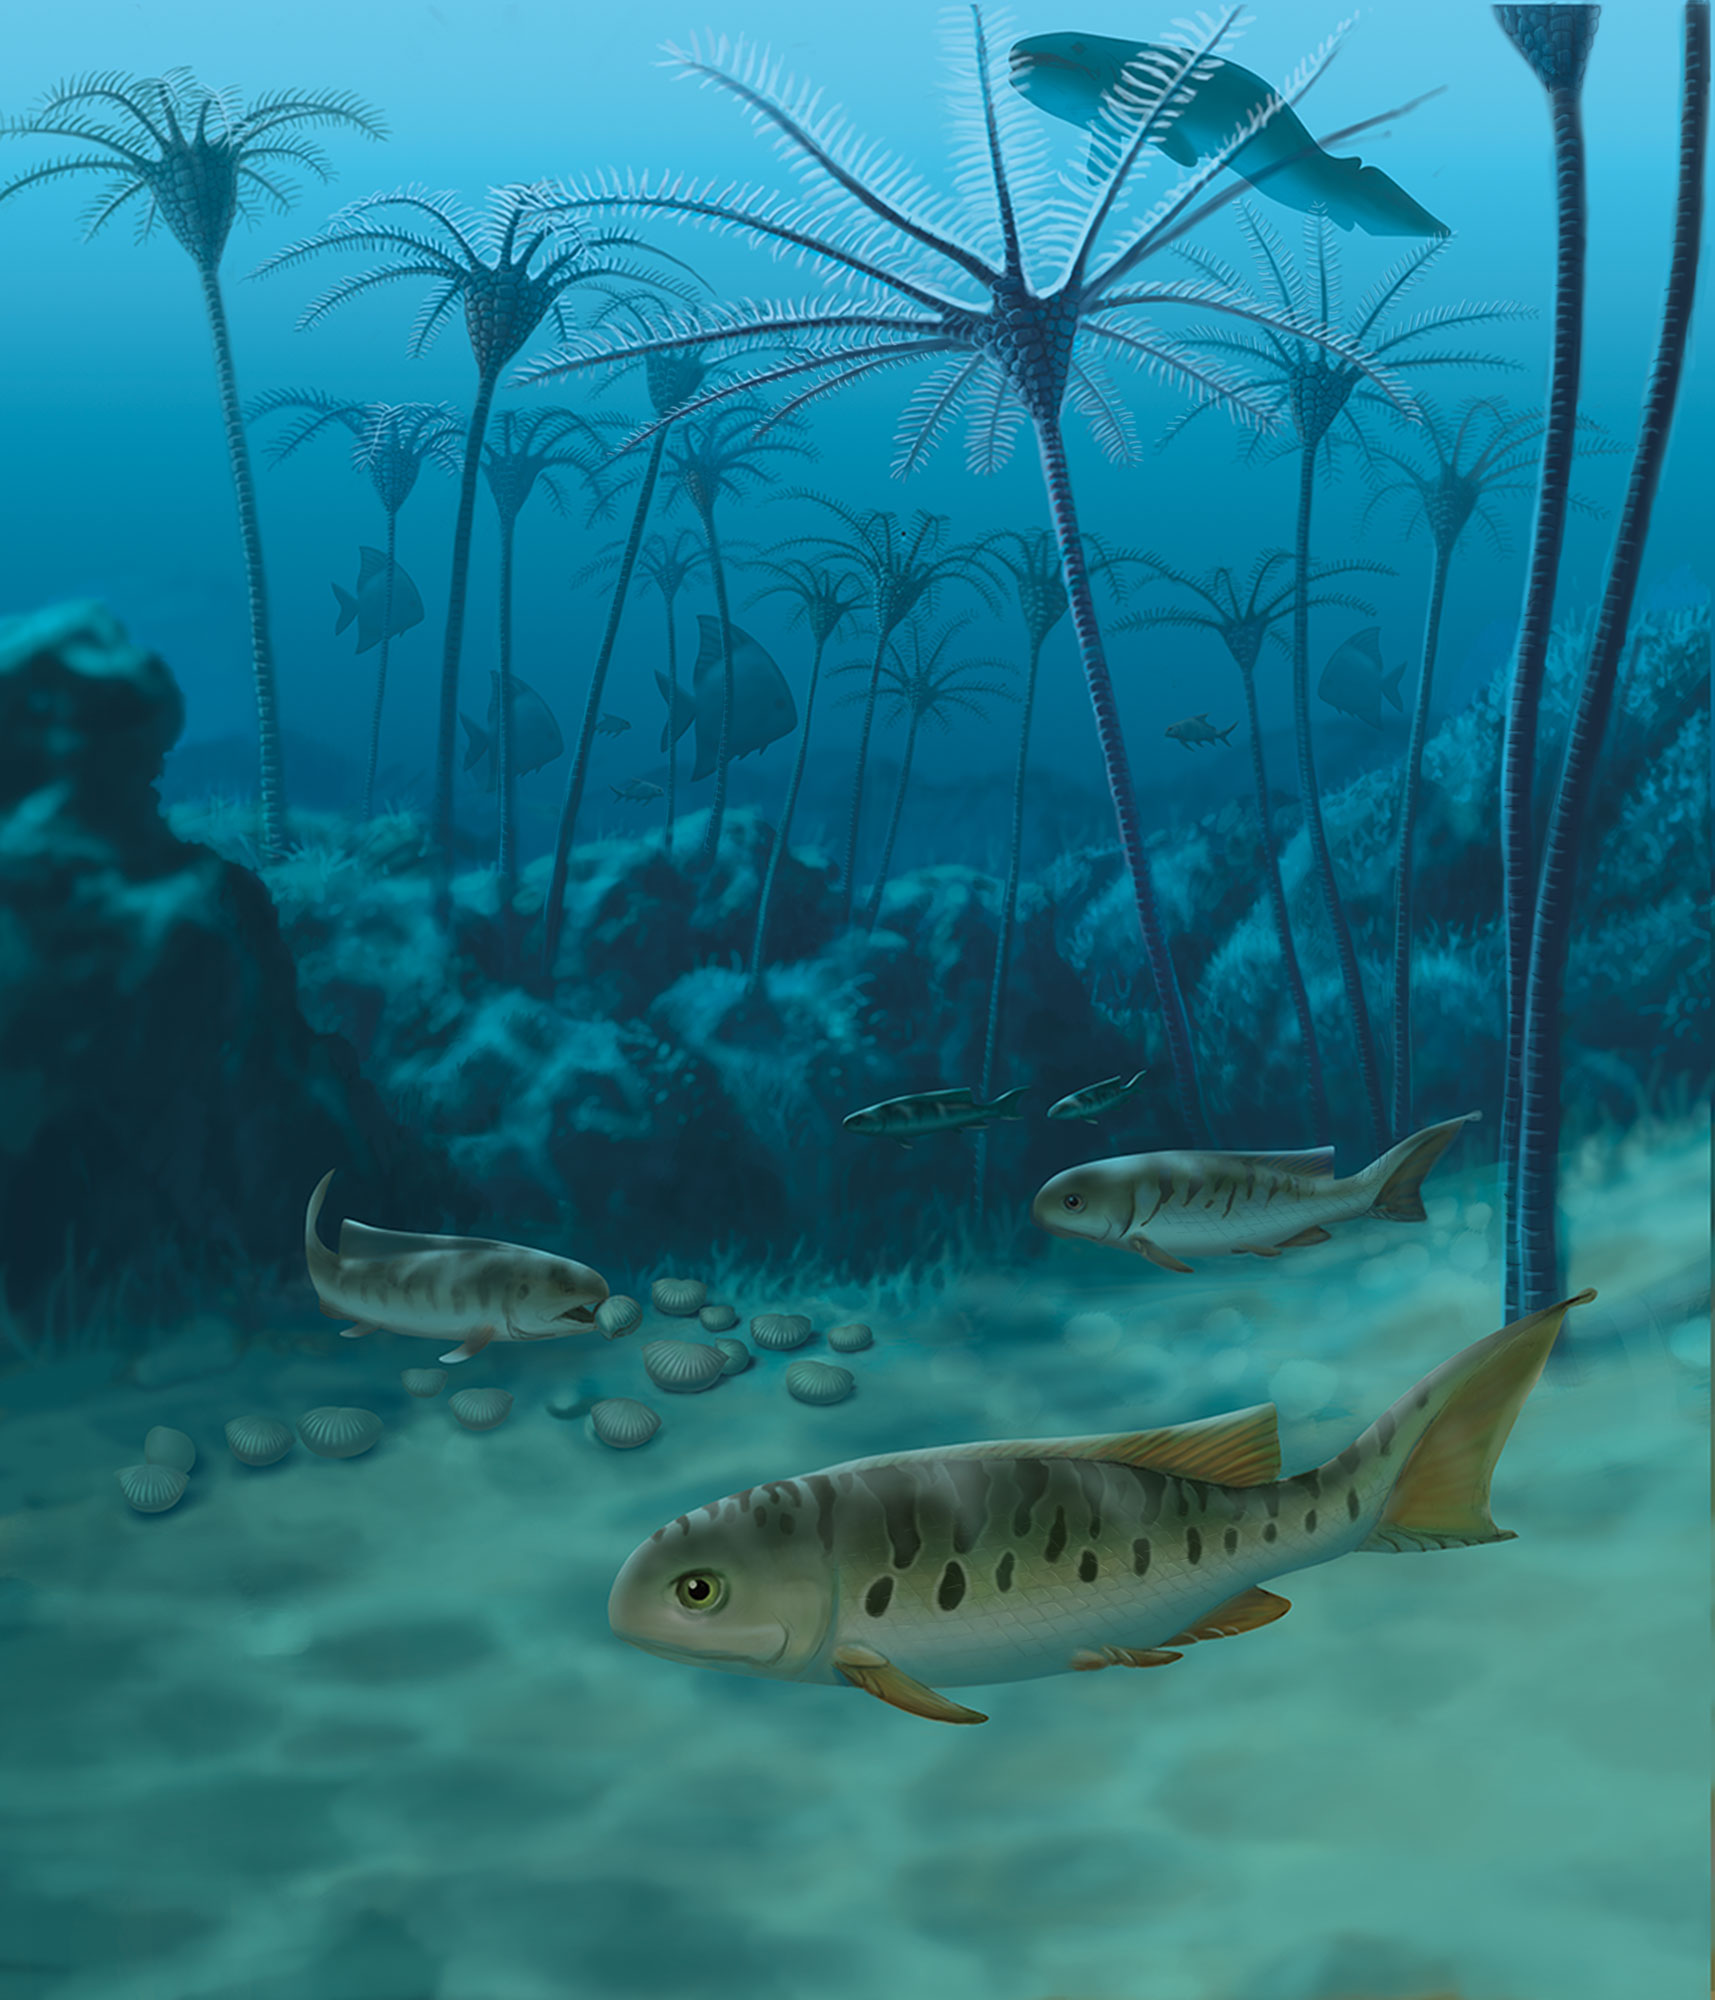 Styracopterus, a later relative of Fouldenia that appeared alongside a host of fish with new body forms about 338 million years ago, is shown at a near-shore reef not far from the site where the Fouldenia fossils were collected. Painting by John Megahan.